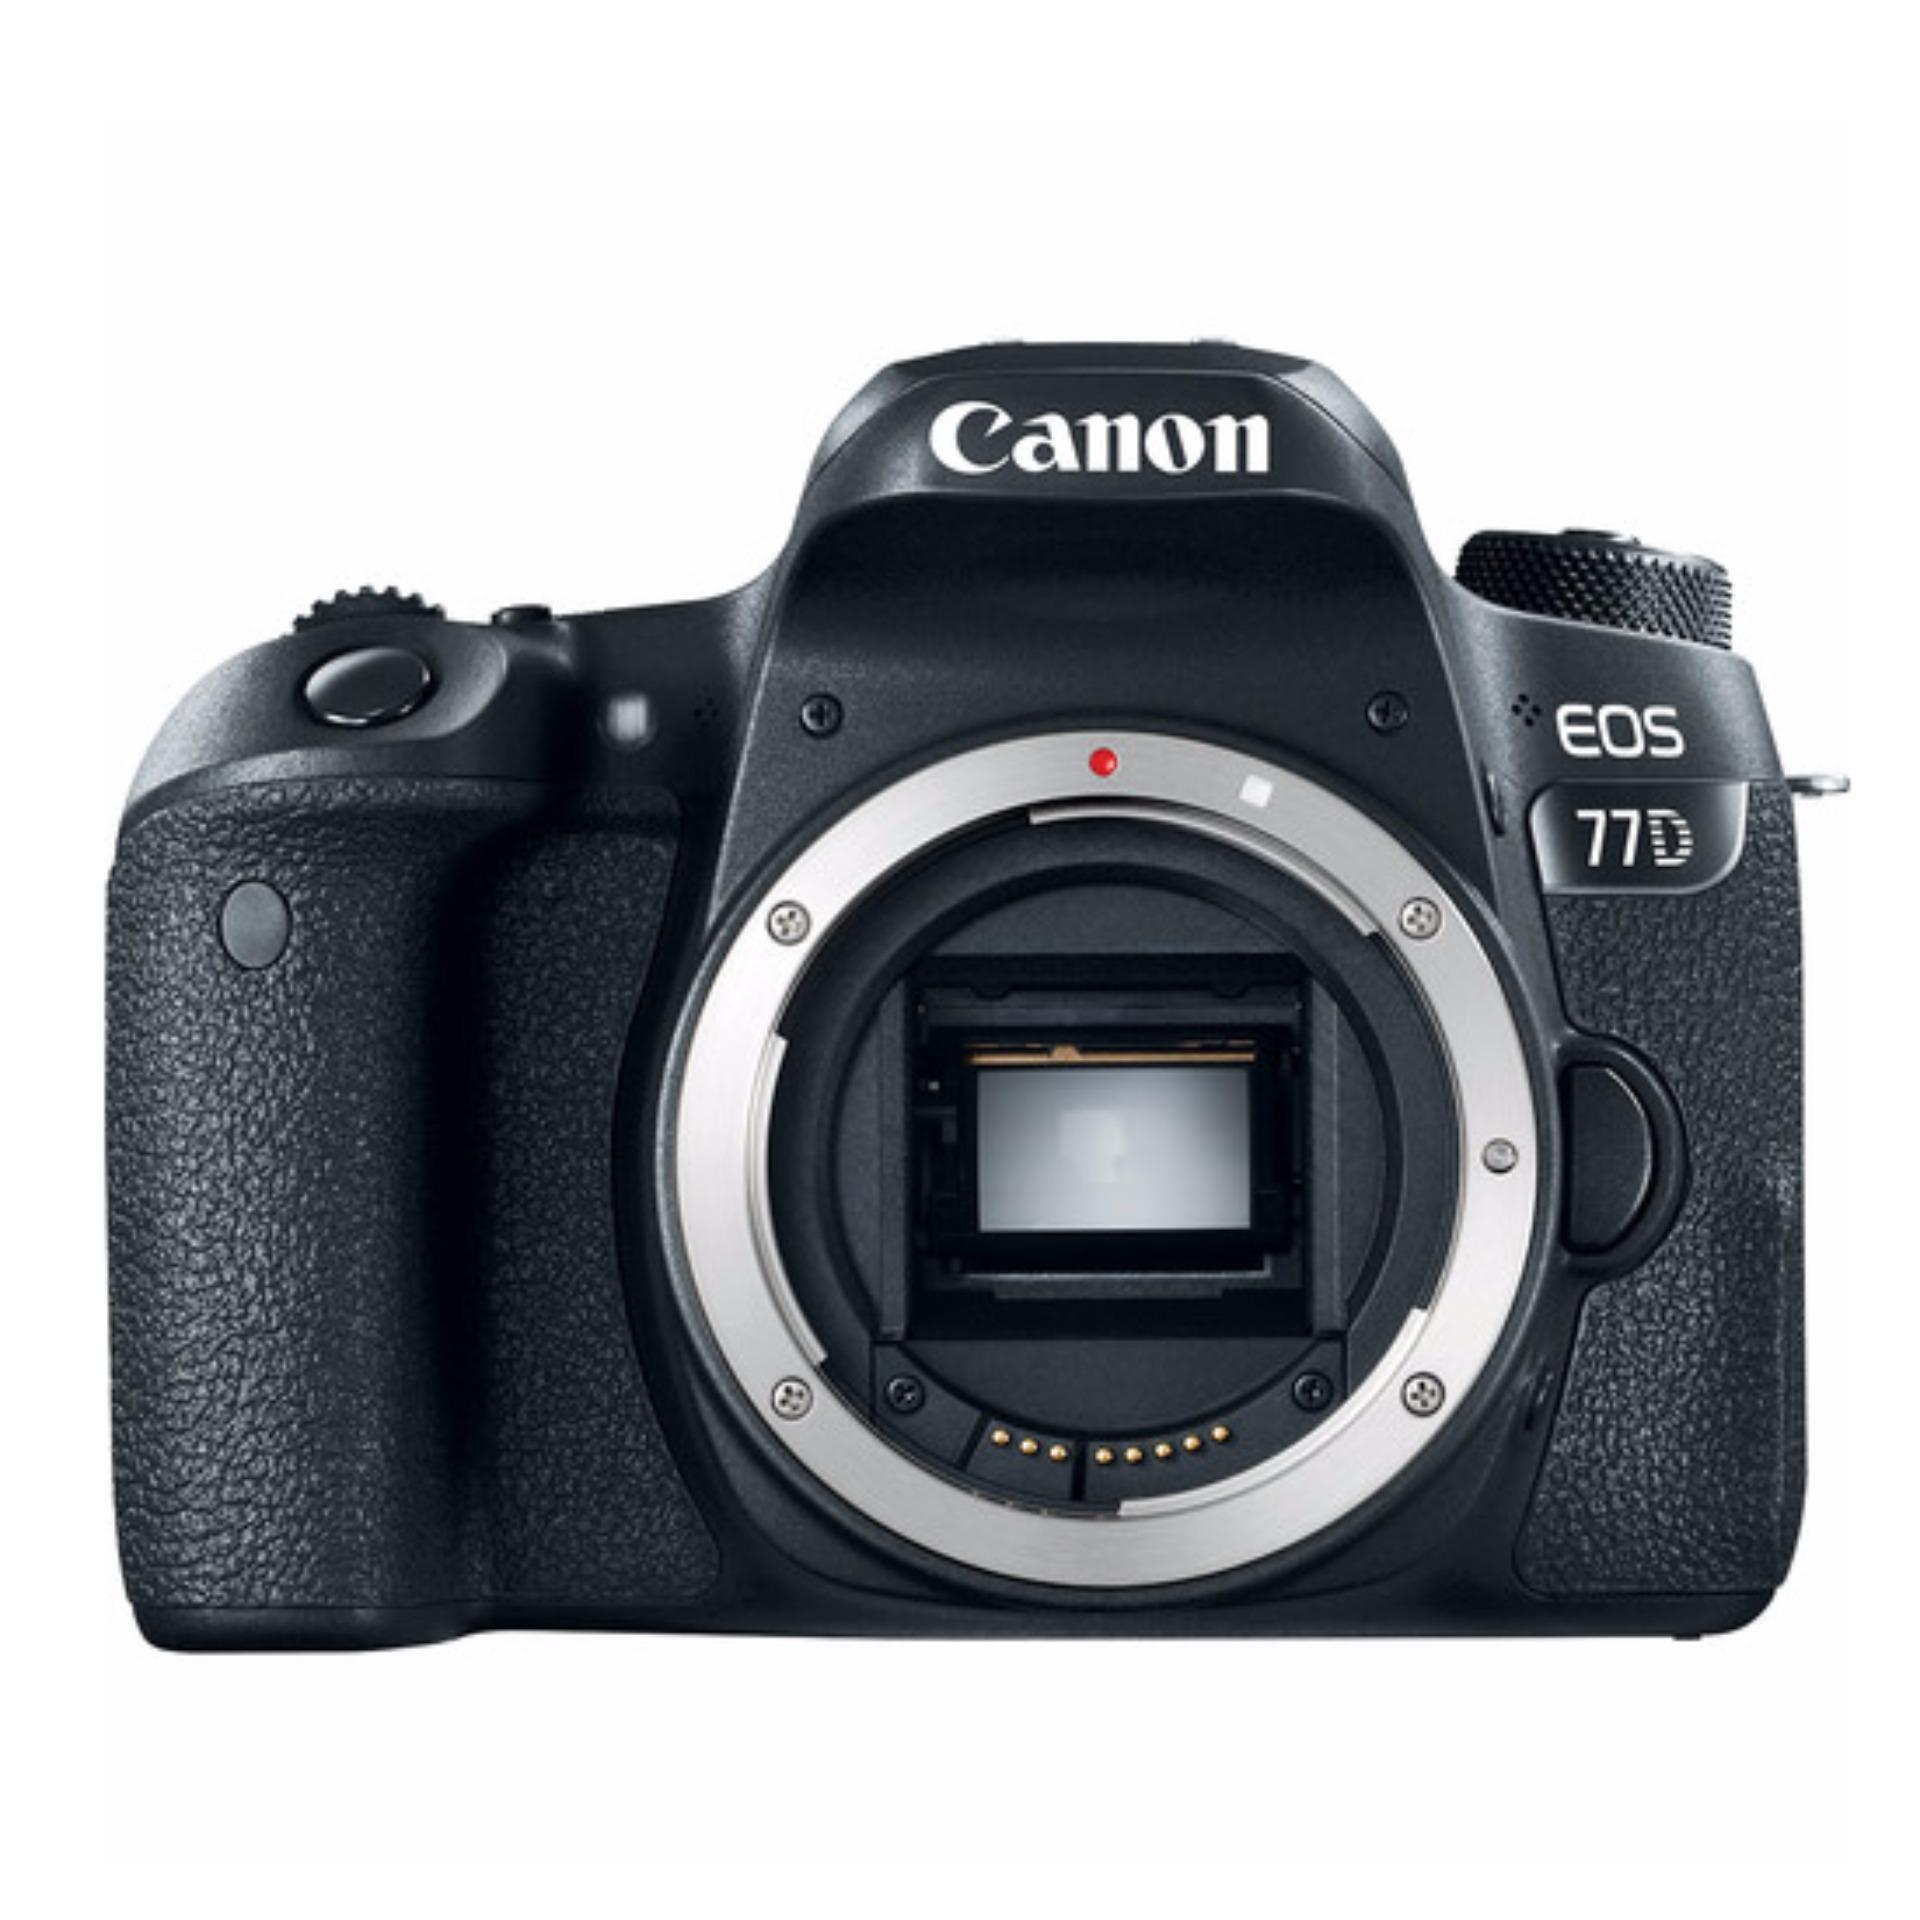 Store Canon Eos 77D Dslr Camera Body Only Warranty Canon On Singapore